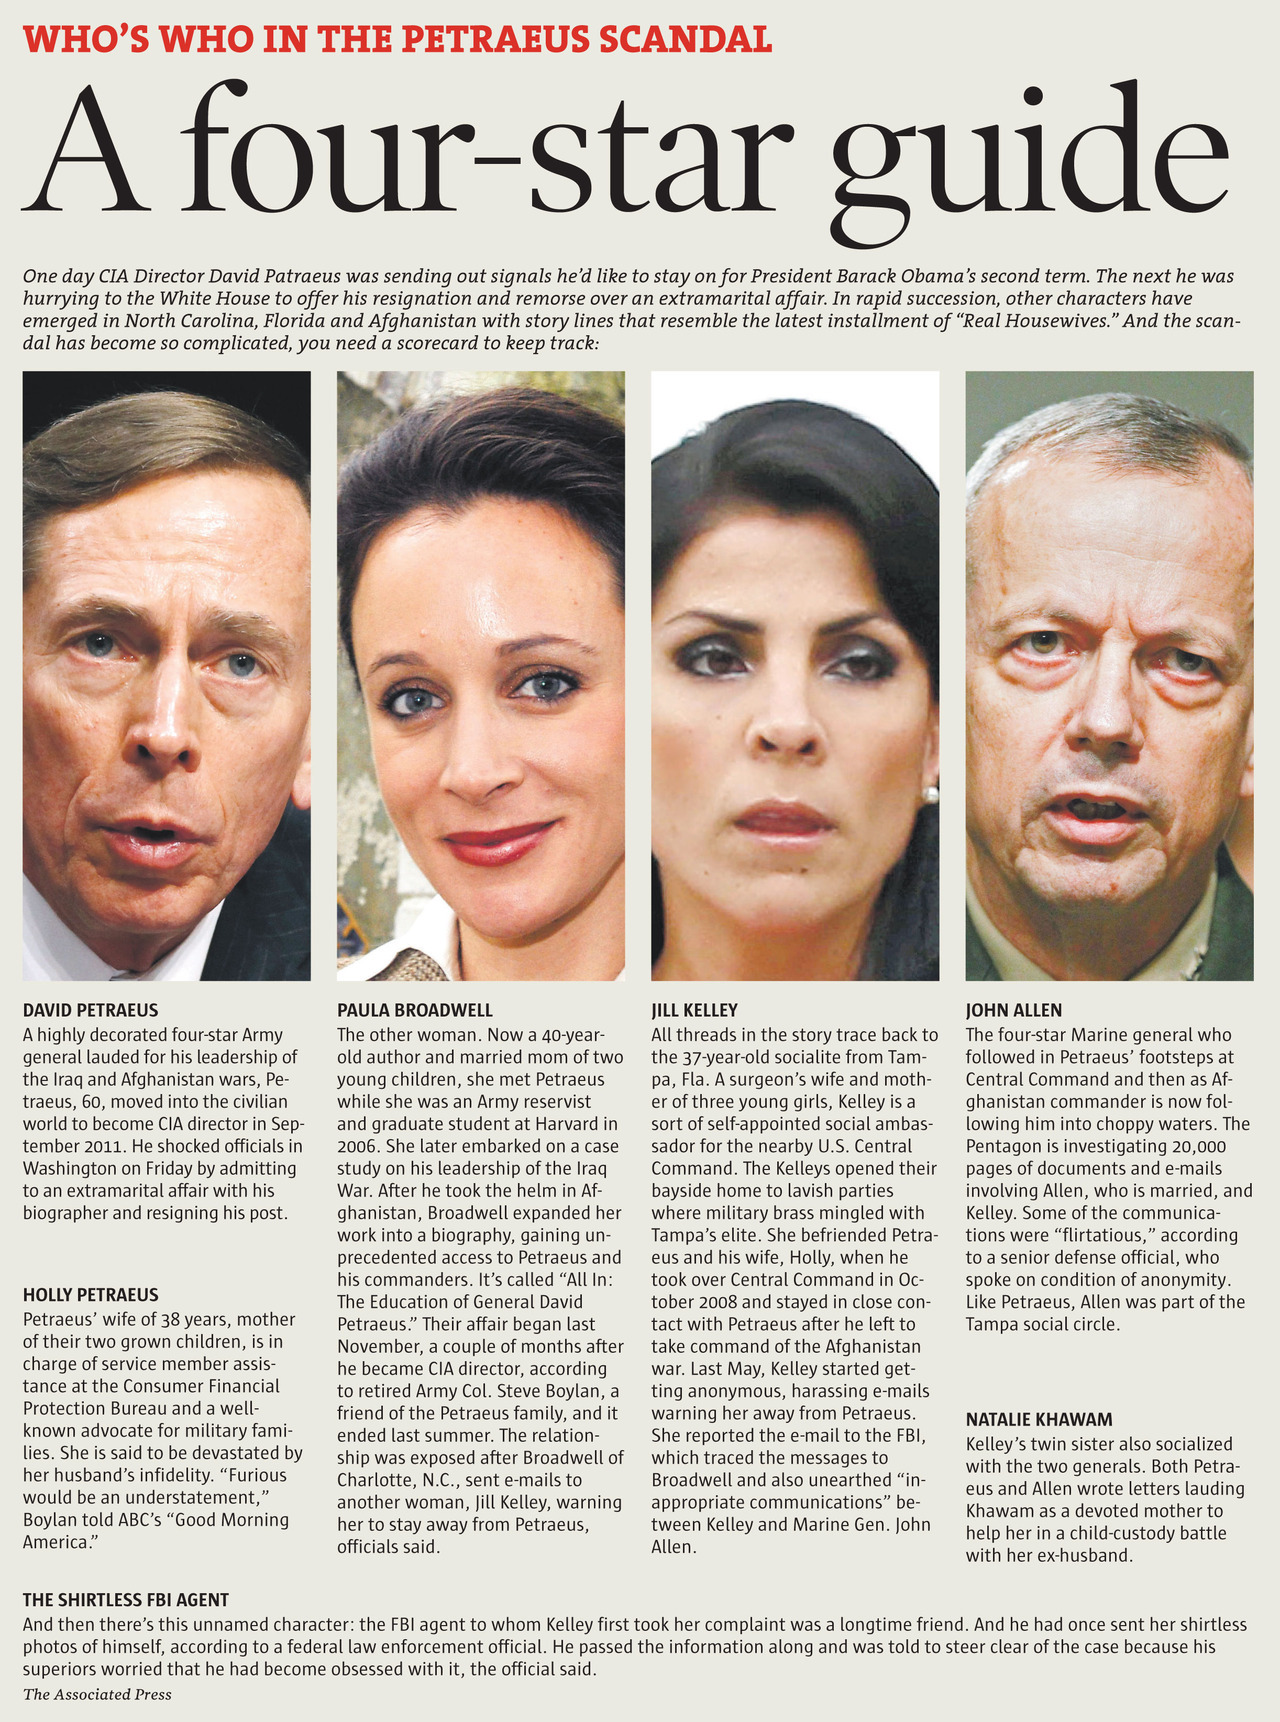 Who's who in the Petraeus scandal: A four-star guide